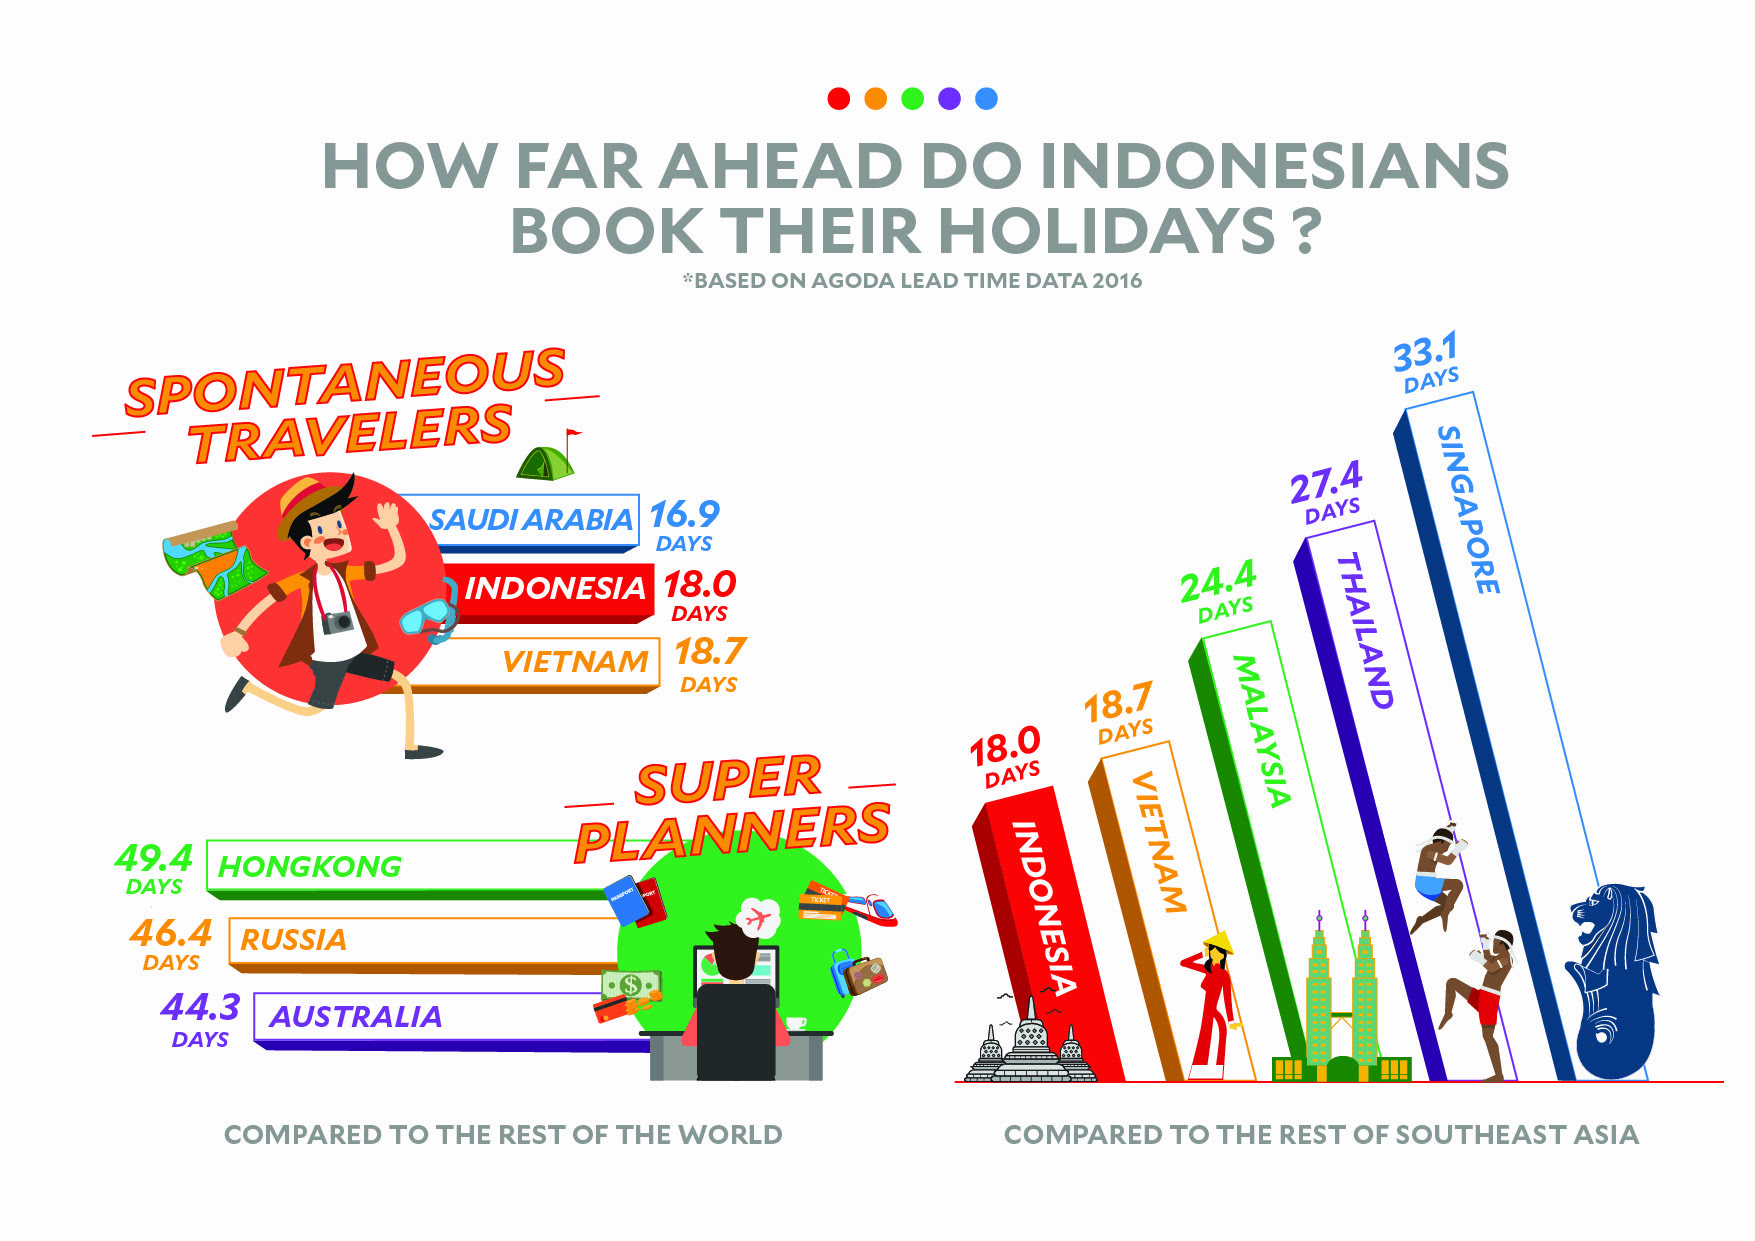 Indonesians amongst the most spontaneous travellers in the